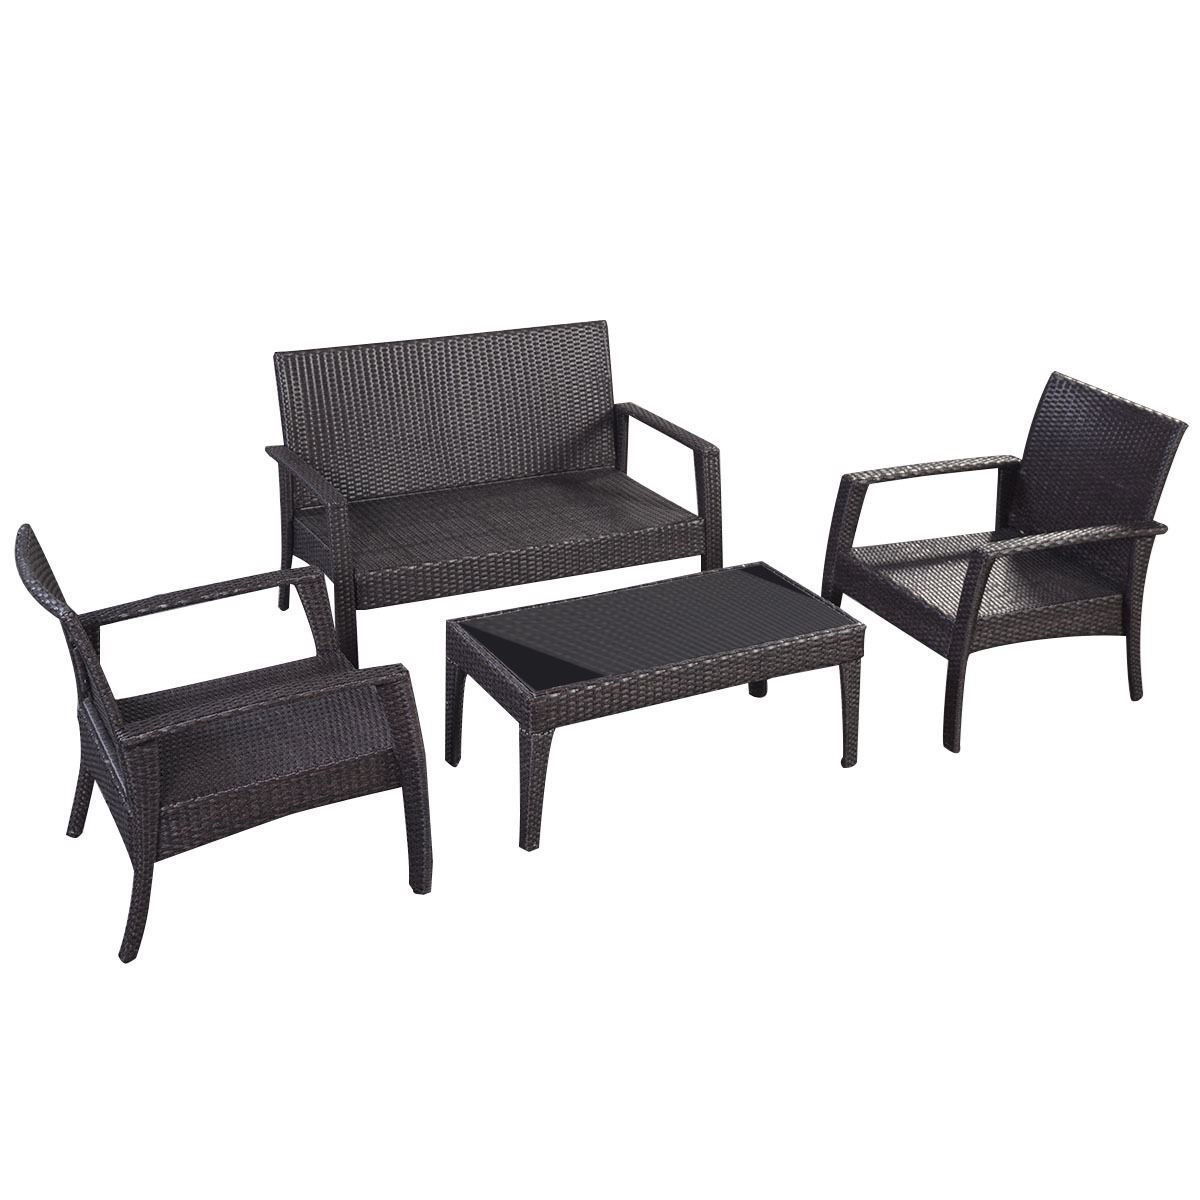 Picture of Outdoor Patio Rattan Furniture Set - 4 Pcs